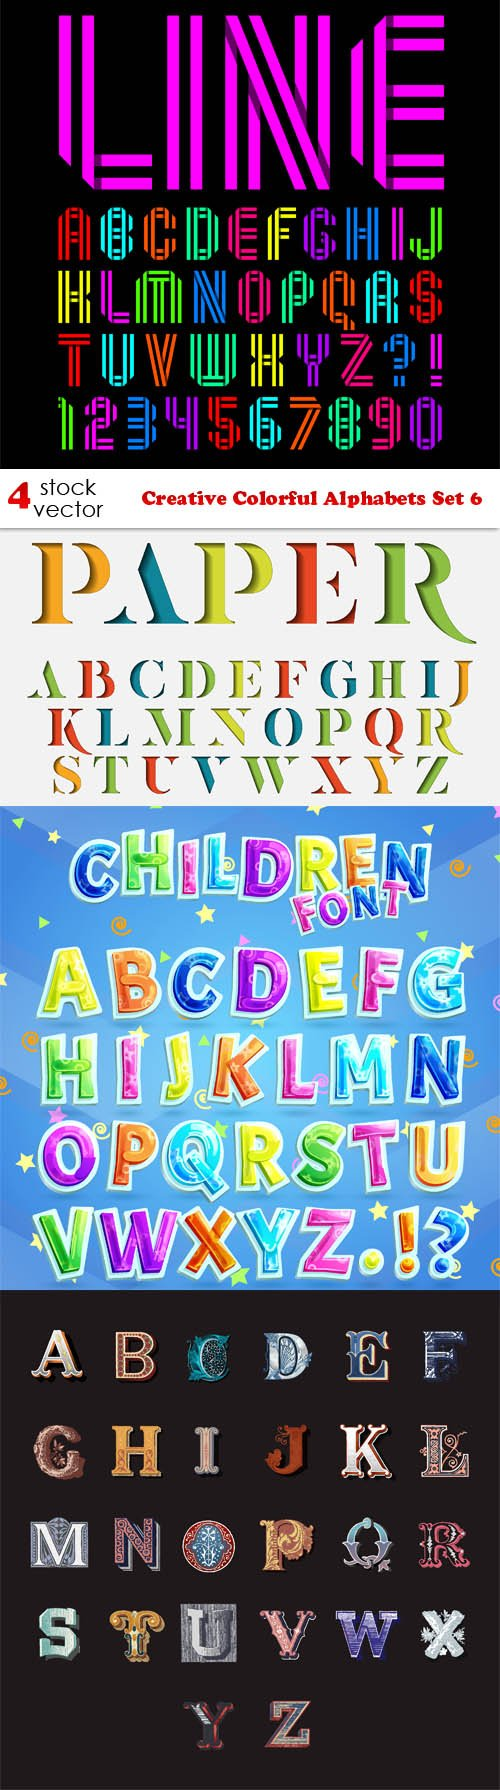 Vectors - Creative Colorful Alphabets Set 6